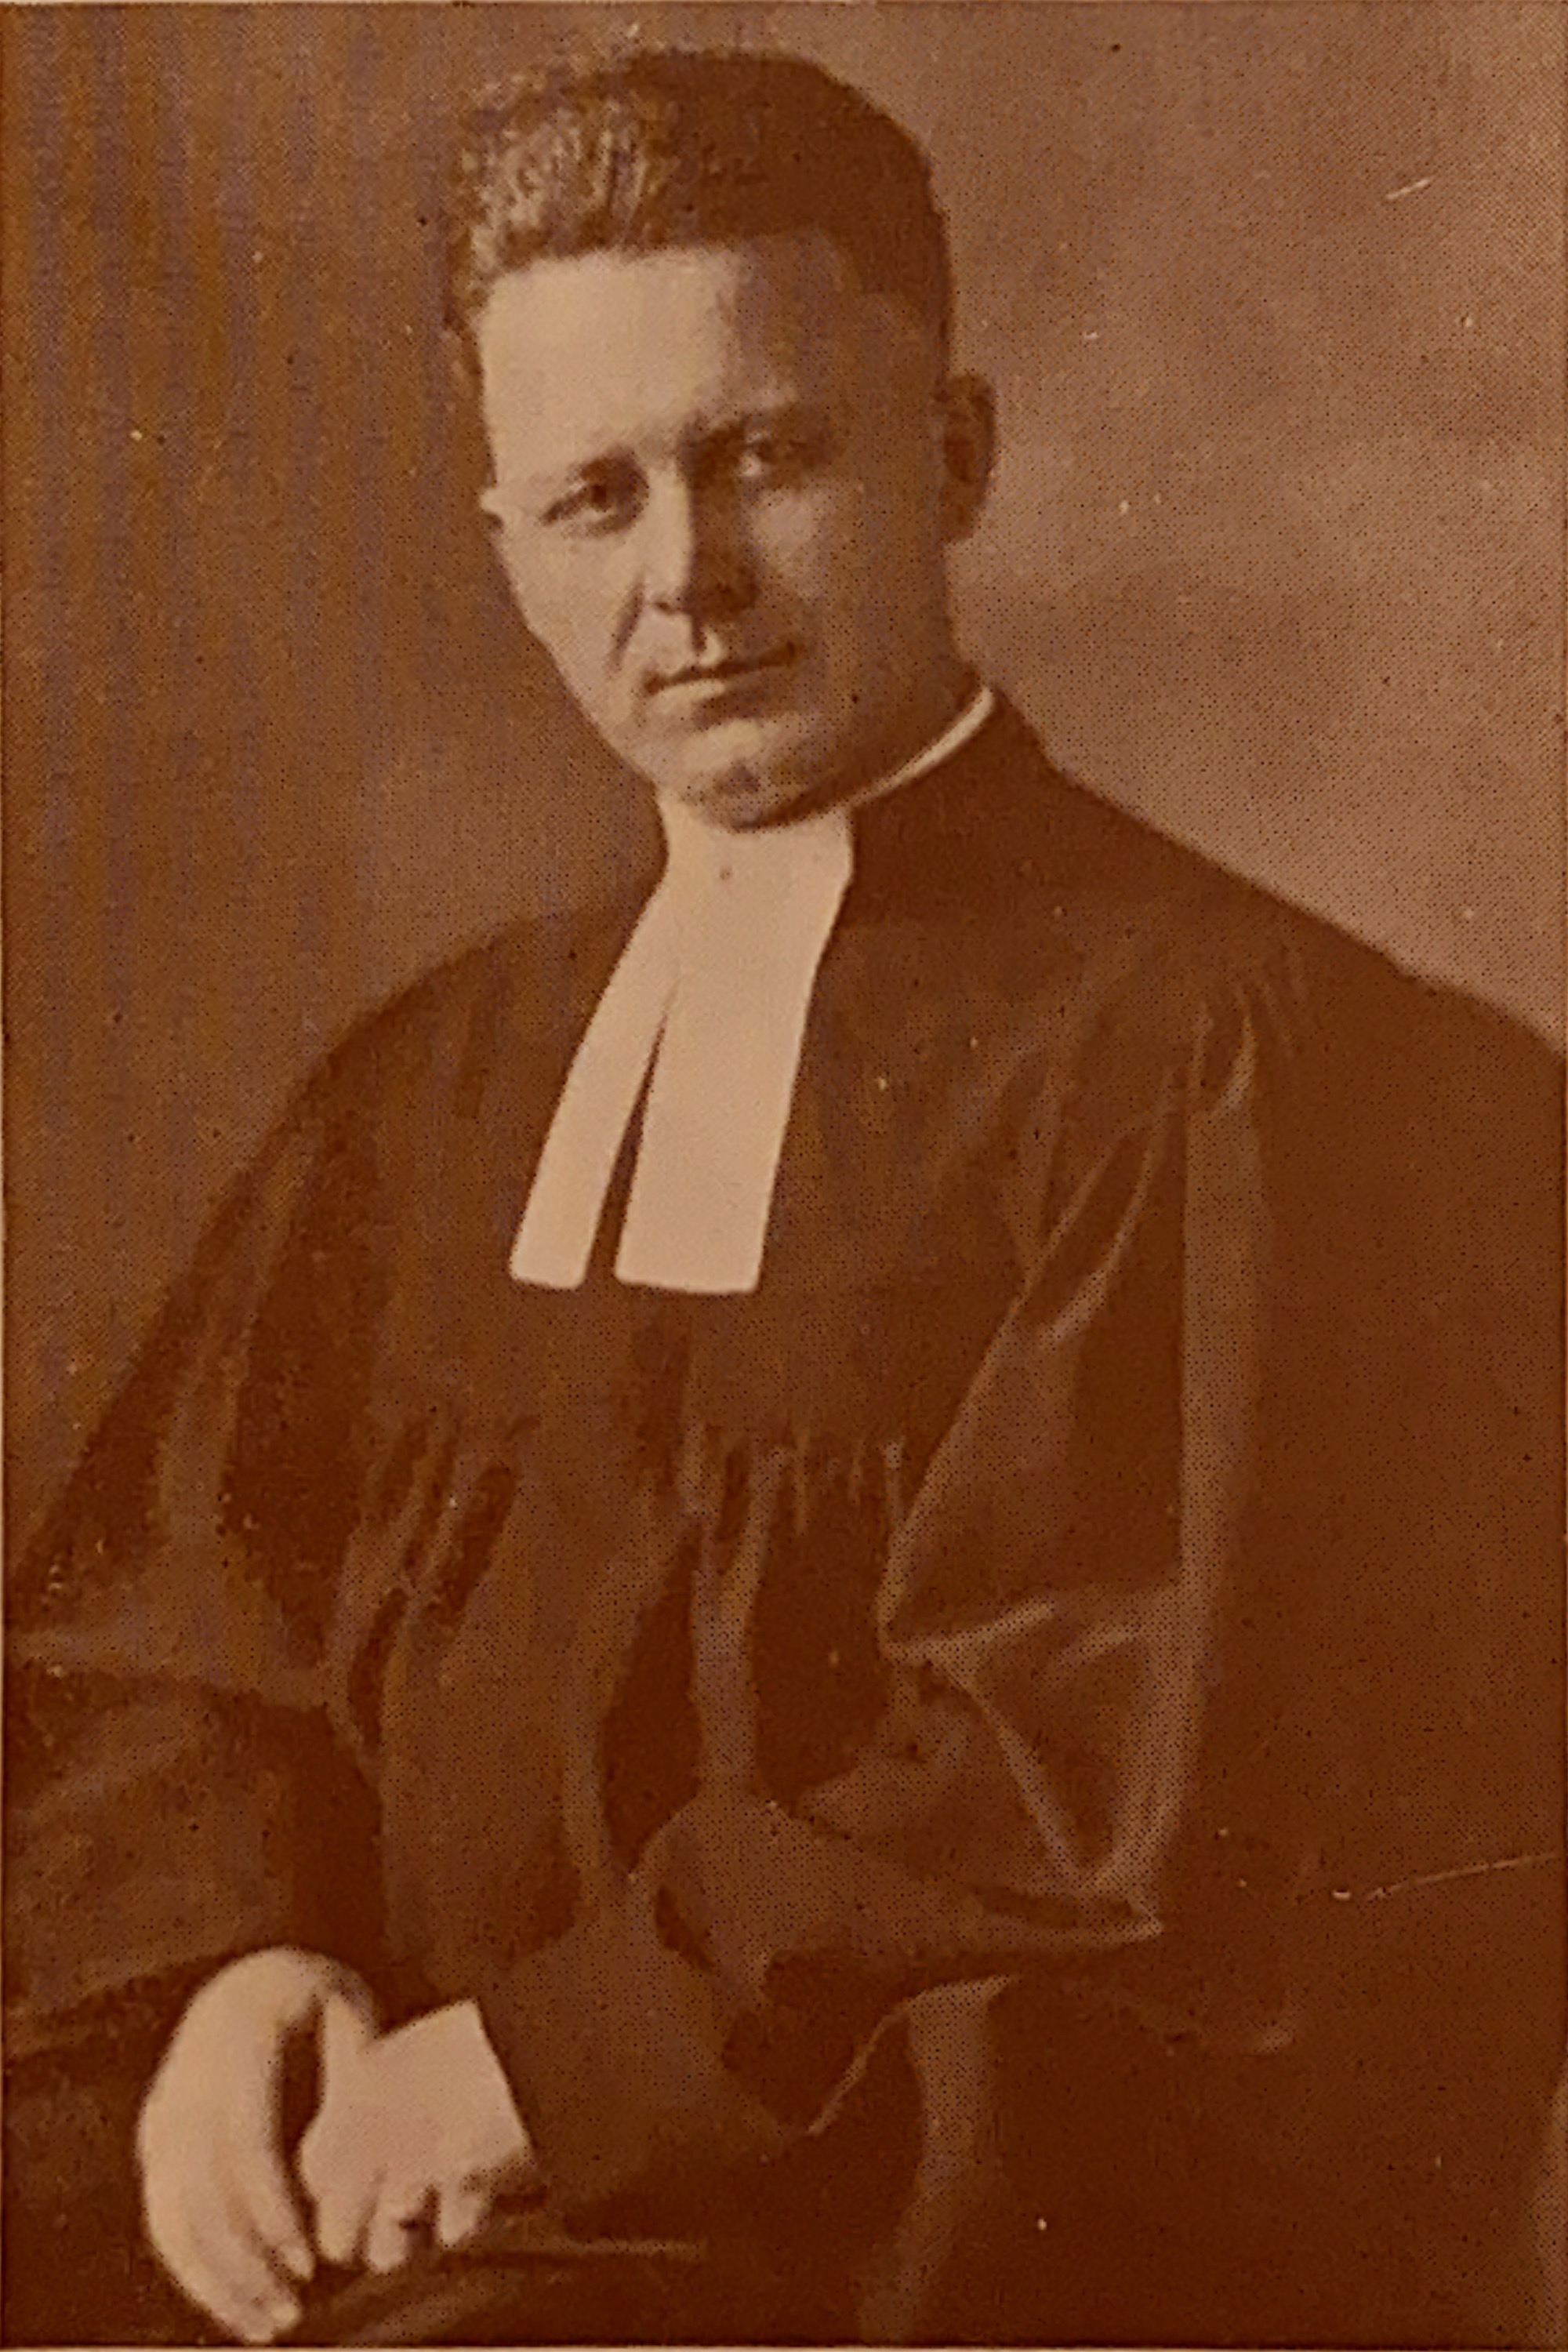 Rev. Reiner H. Benting's portrait was printed in the 1927 Dedication Souvenir pamphlet, handed out to guests of the celebration. Benting and a member of the congregation wrote a hymn for organ, which was performed at the Dedication Services on the church's new pipe organ.